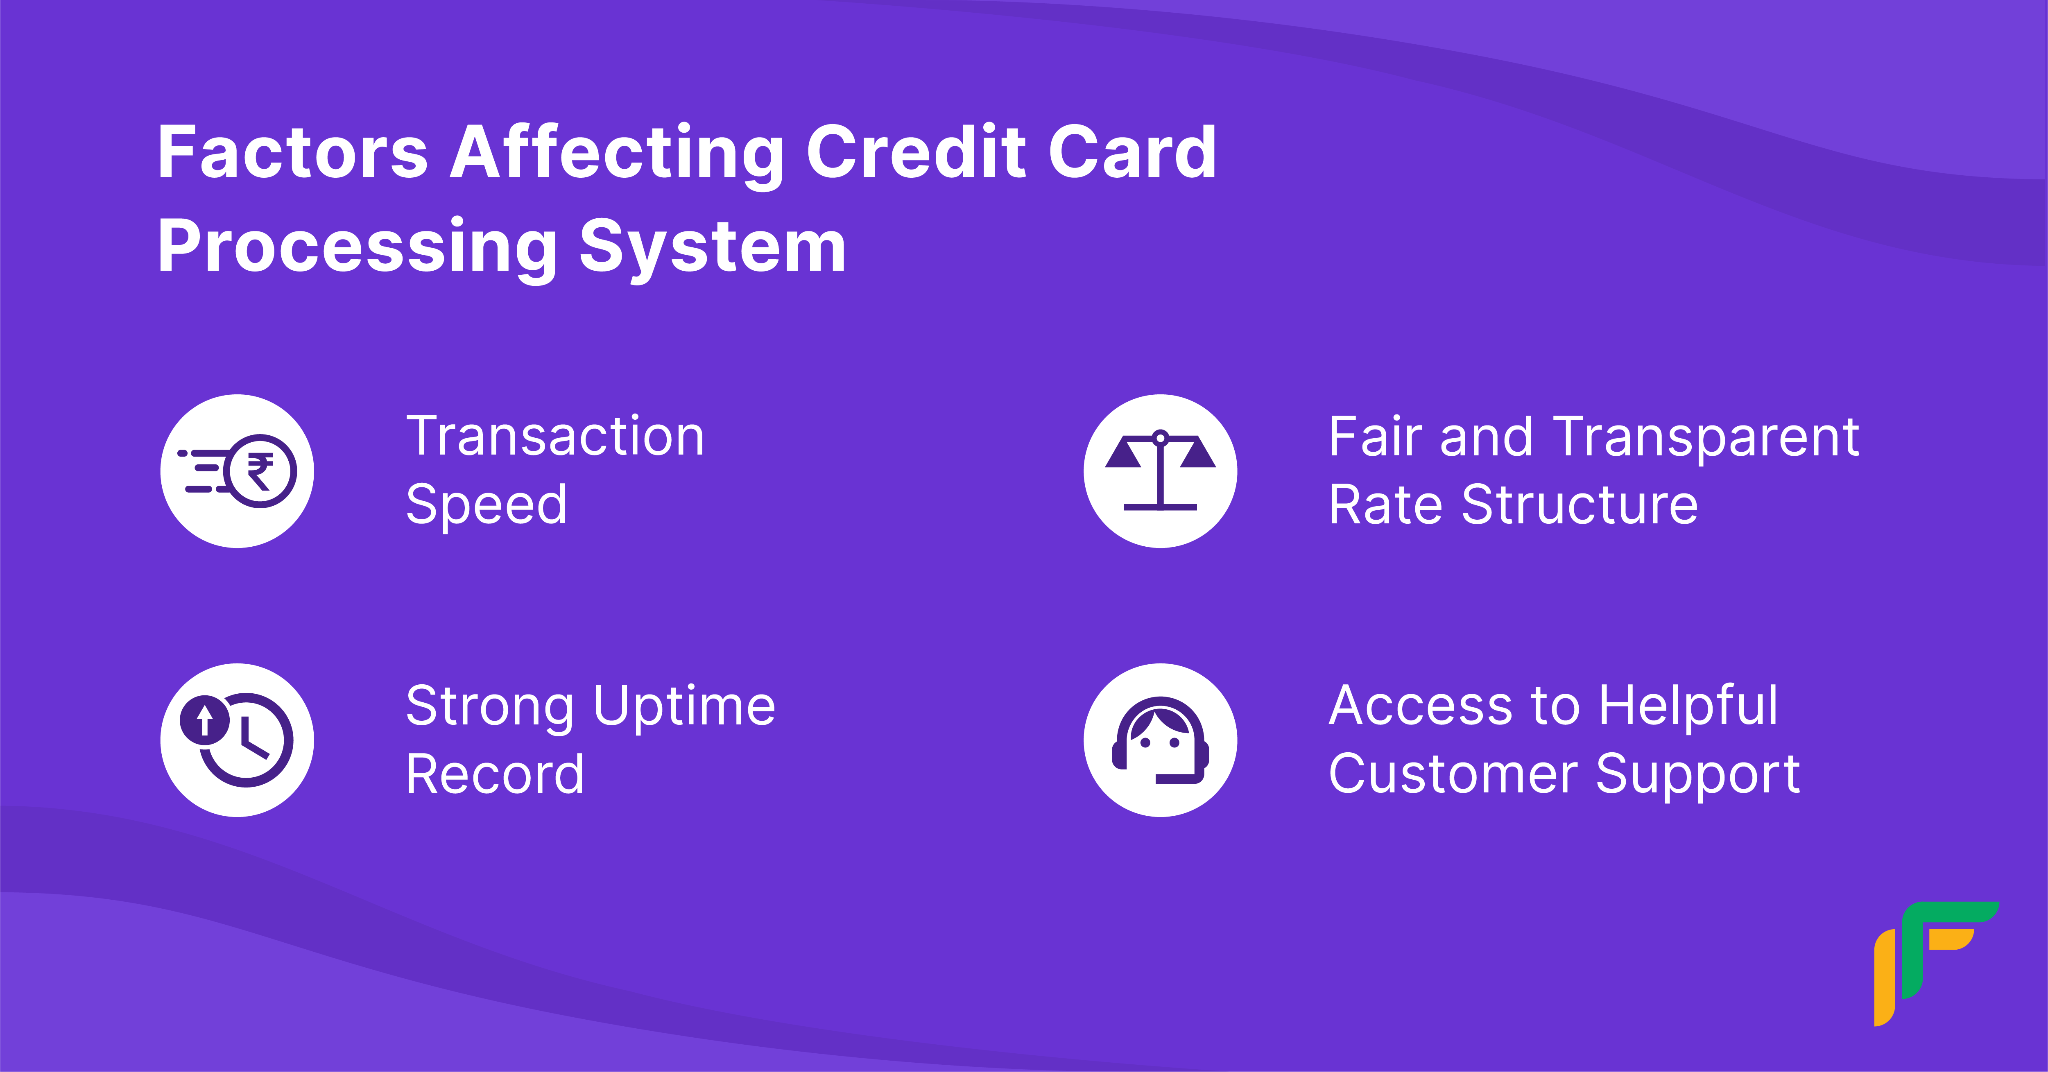 factors Affecting Credit Card Processing System